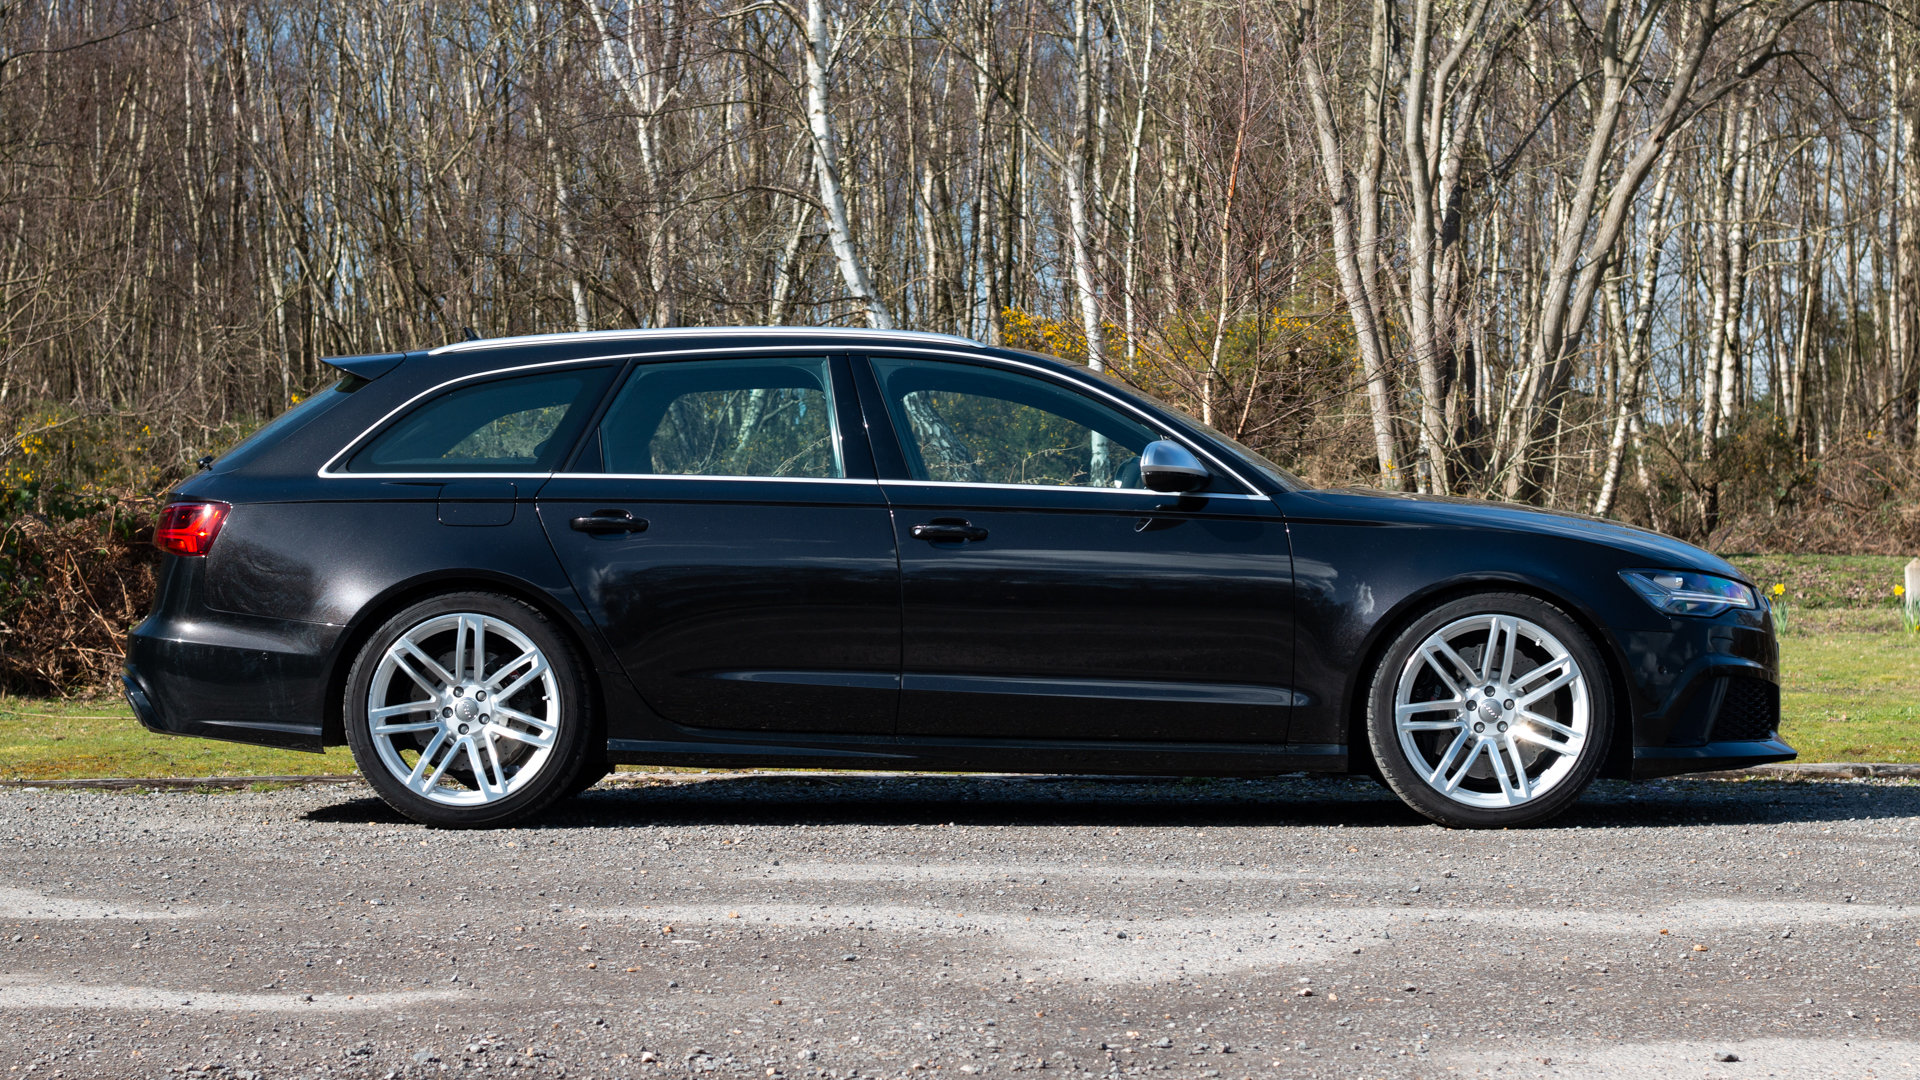 2017 Audi RS6 4.0 V8 TFSI Quattro For Sale (picture 3 of 6)